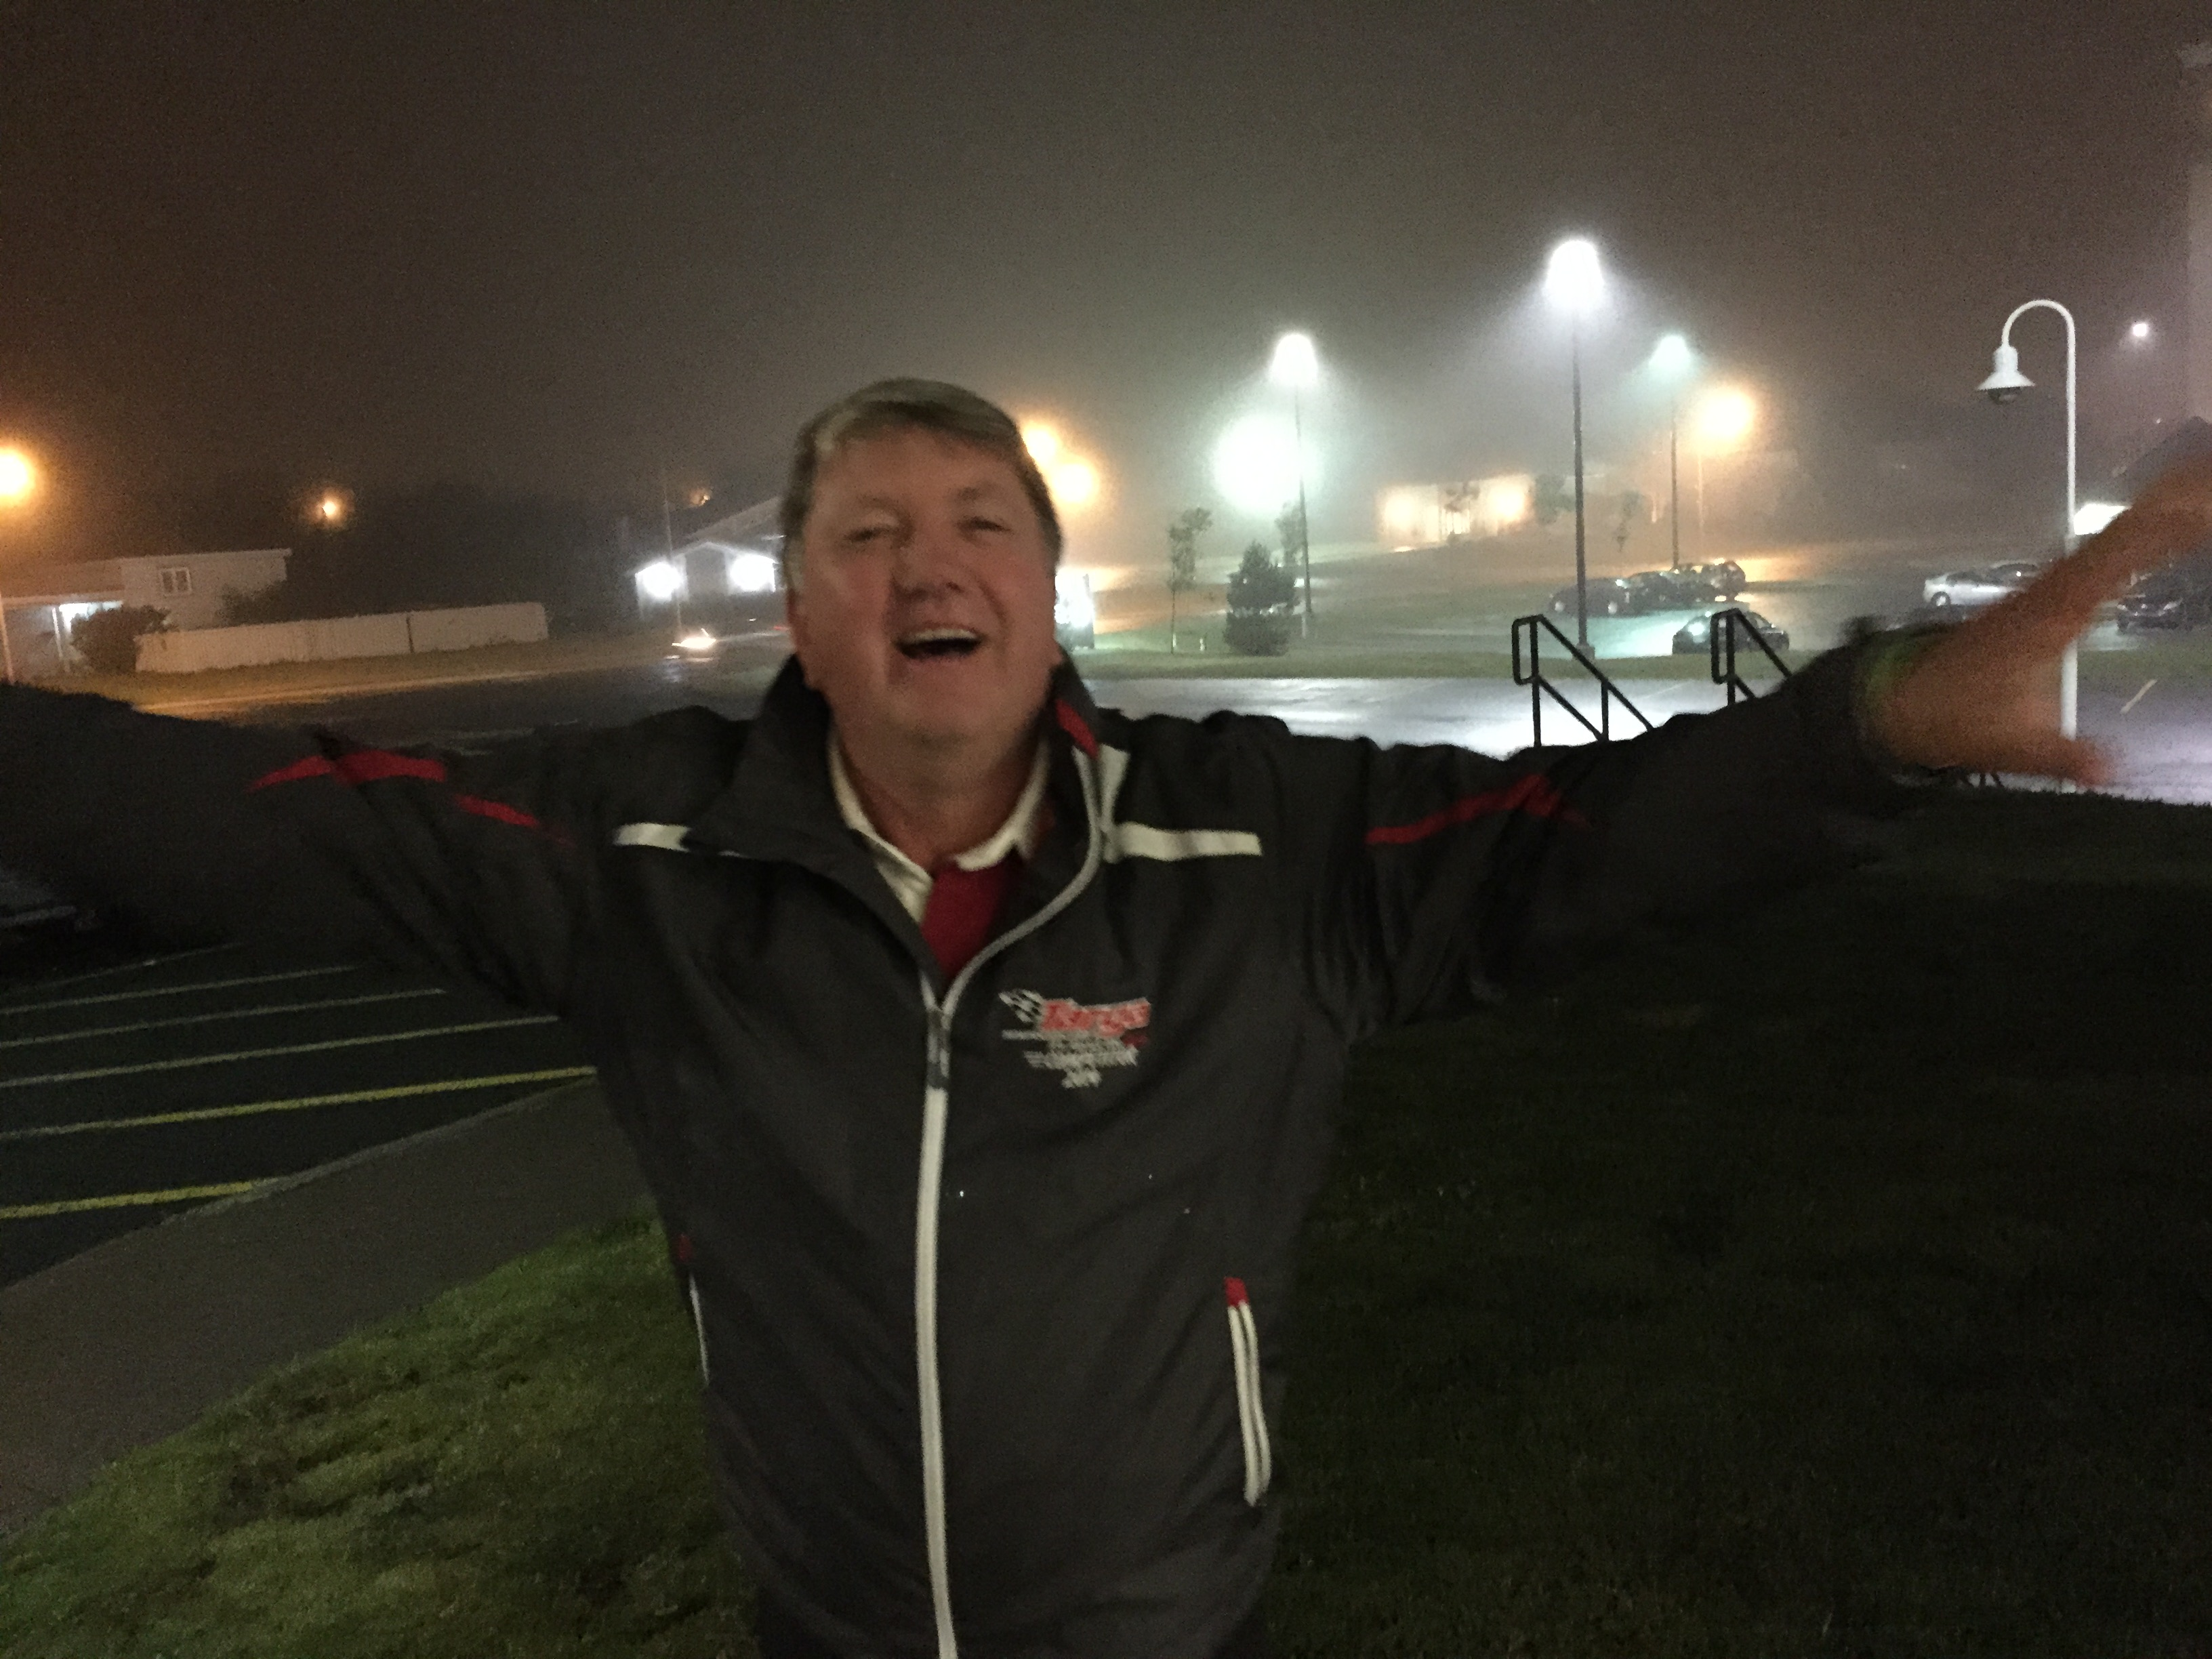 Craig MacMullen of Team Hume stands in the rain is St. John's, Newfoundland. (Post-tropical storm Henri)